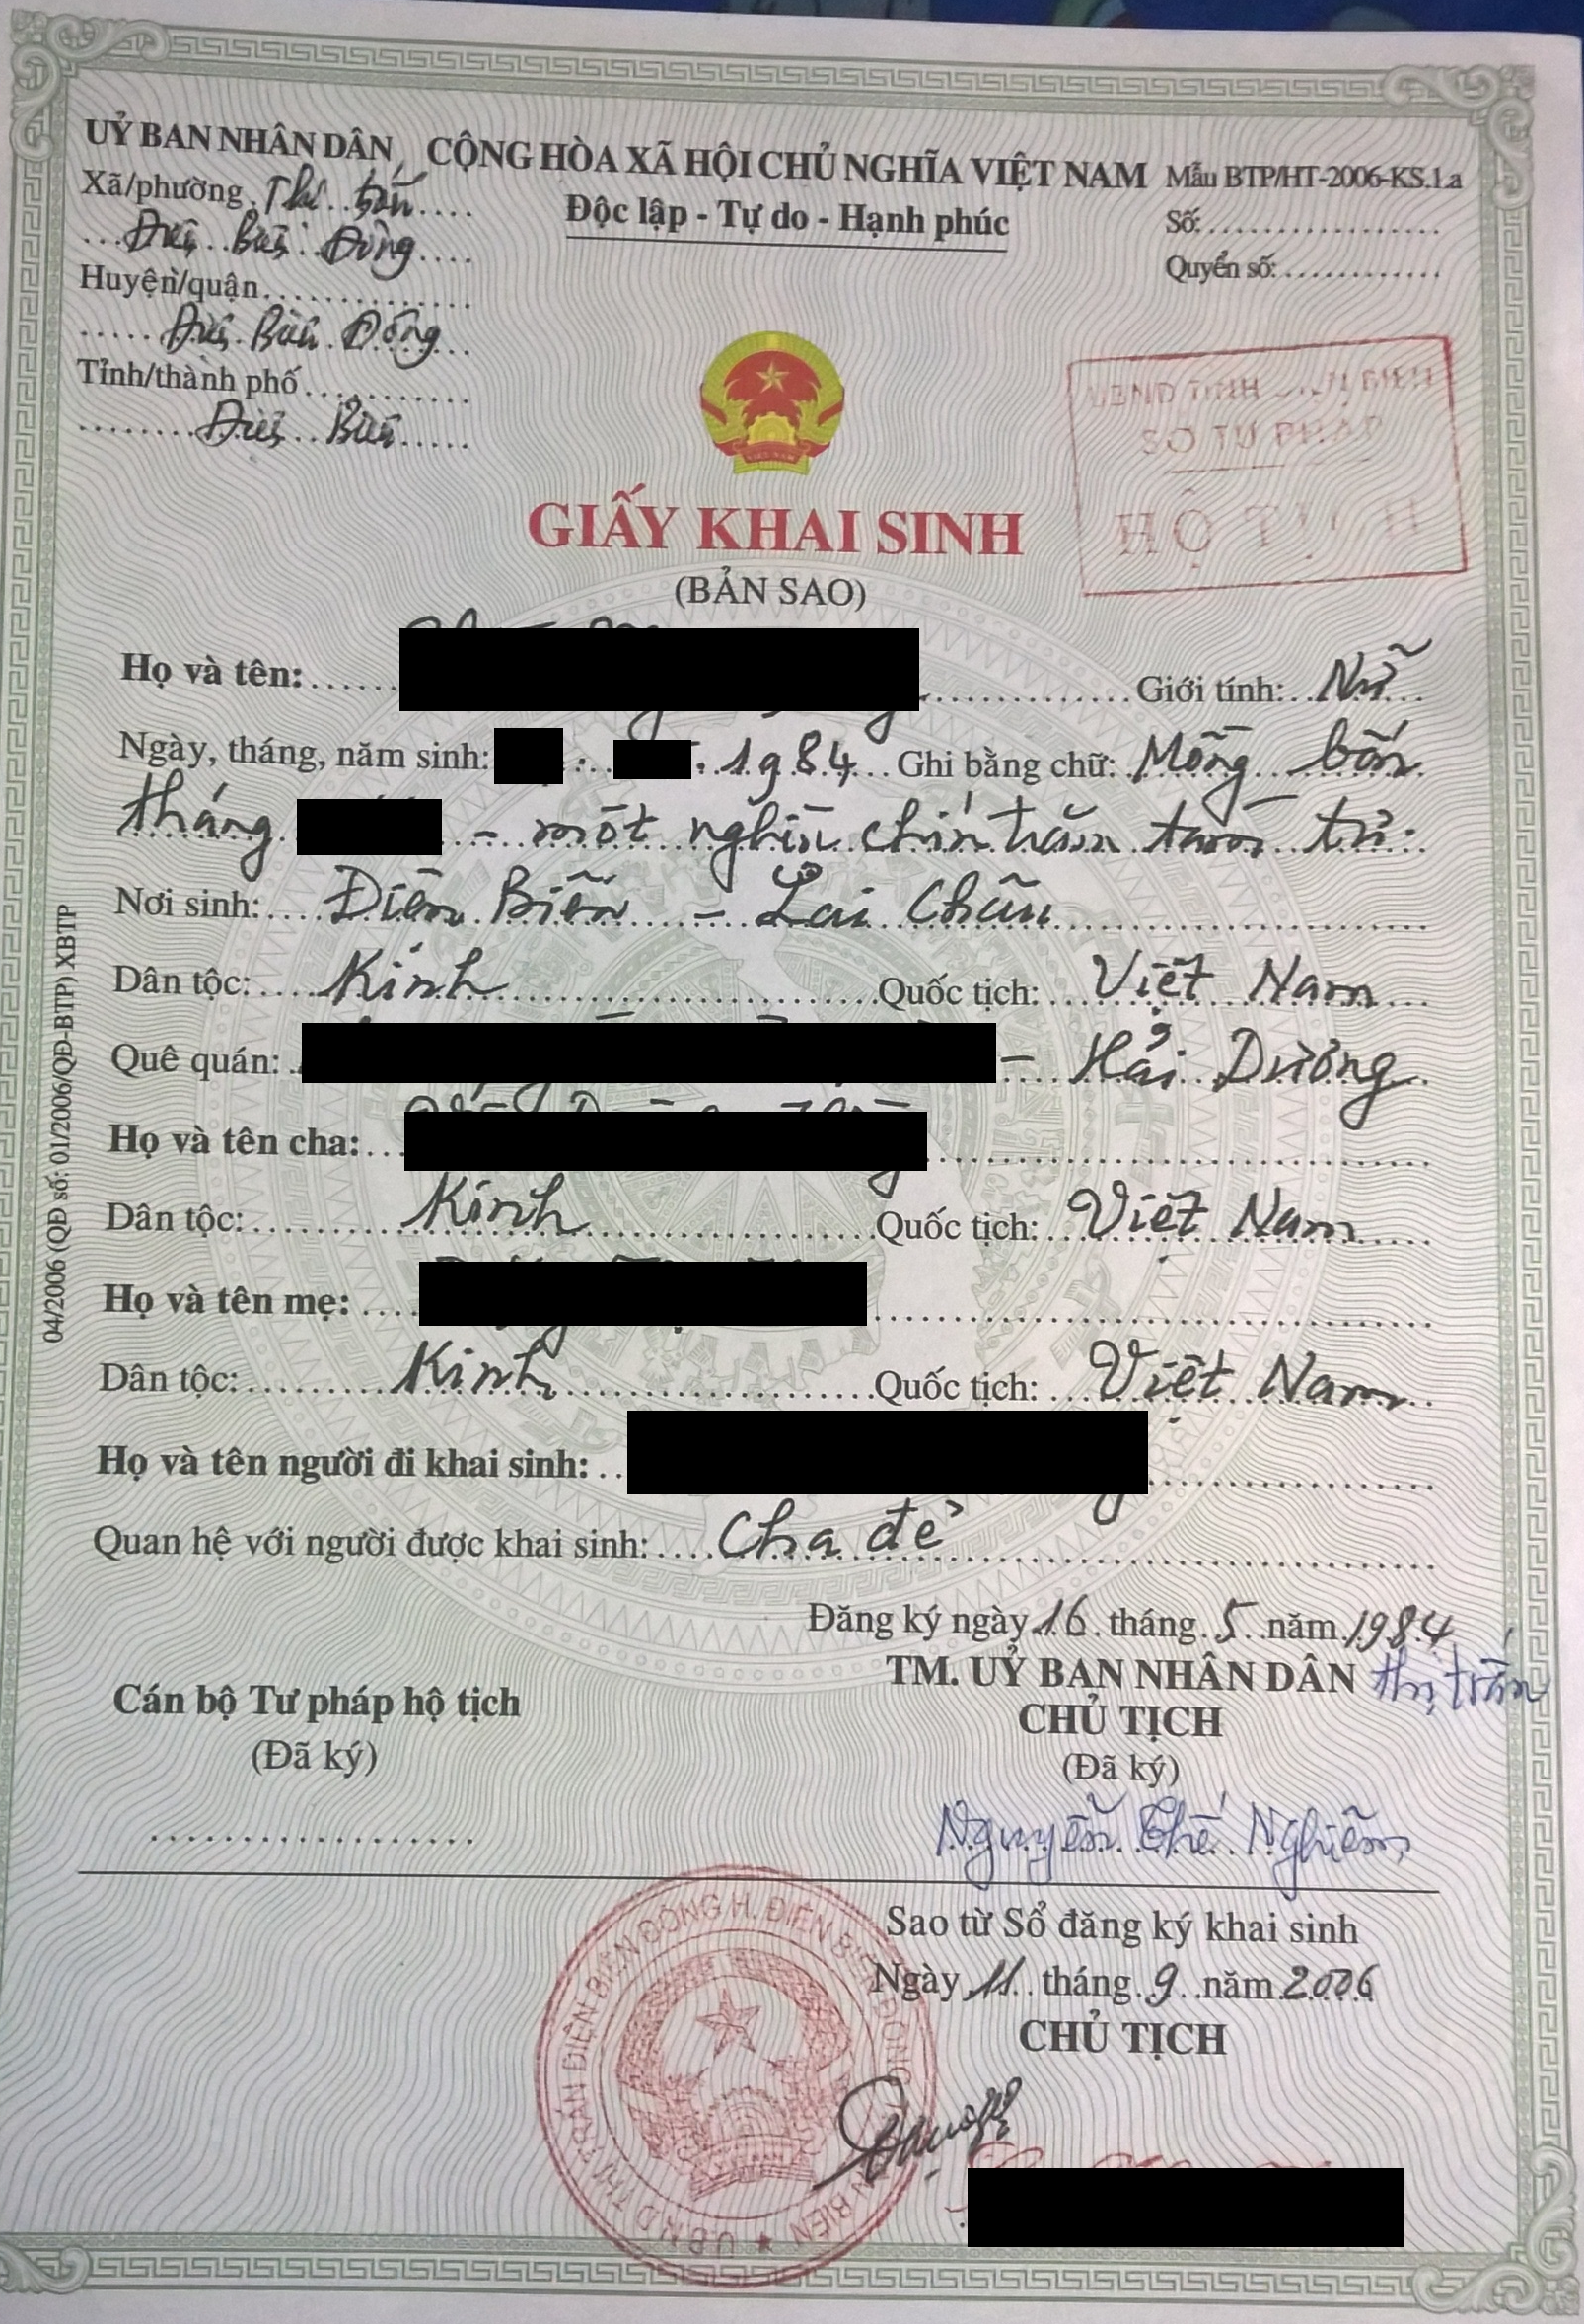 Filevietnamese birth certificate 1984 ag wikimedia commons filevietnamese birth certificate 1984 ag 1betcityfo Choice Image